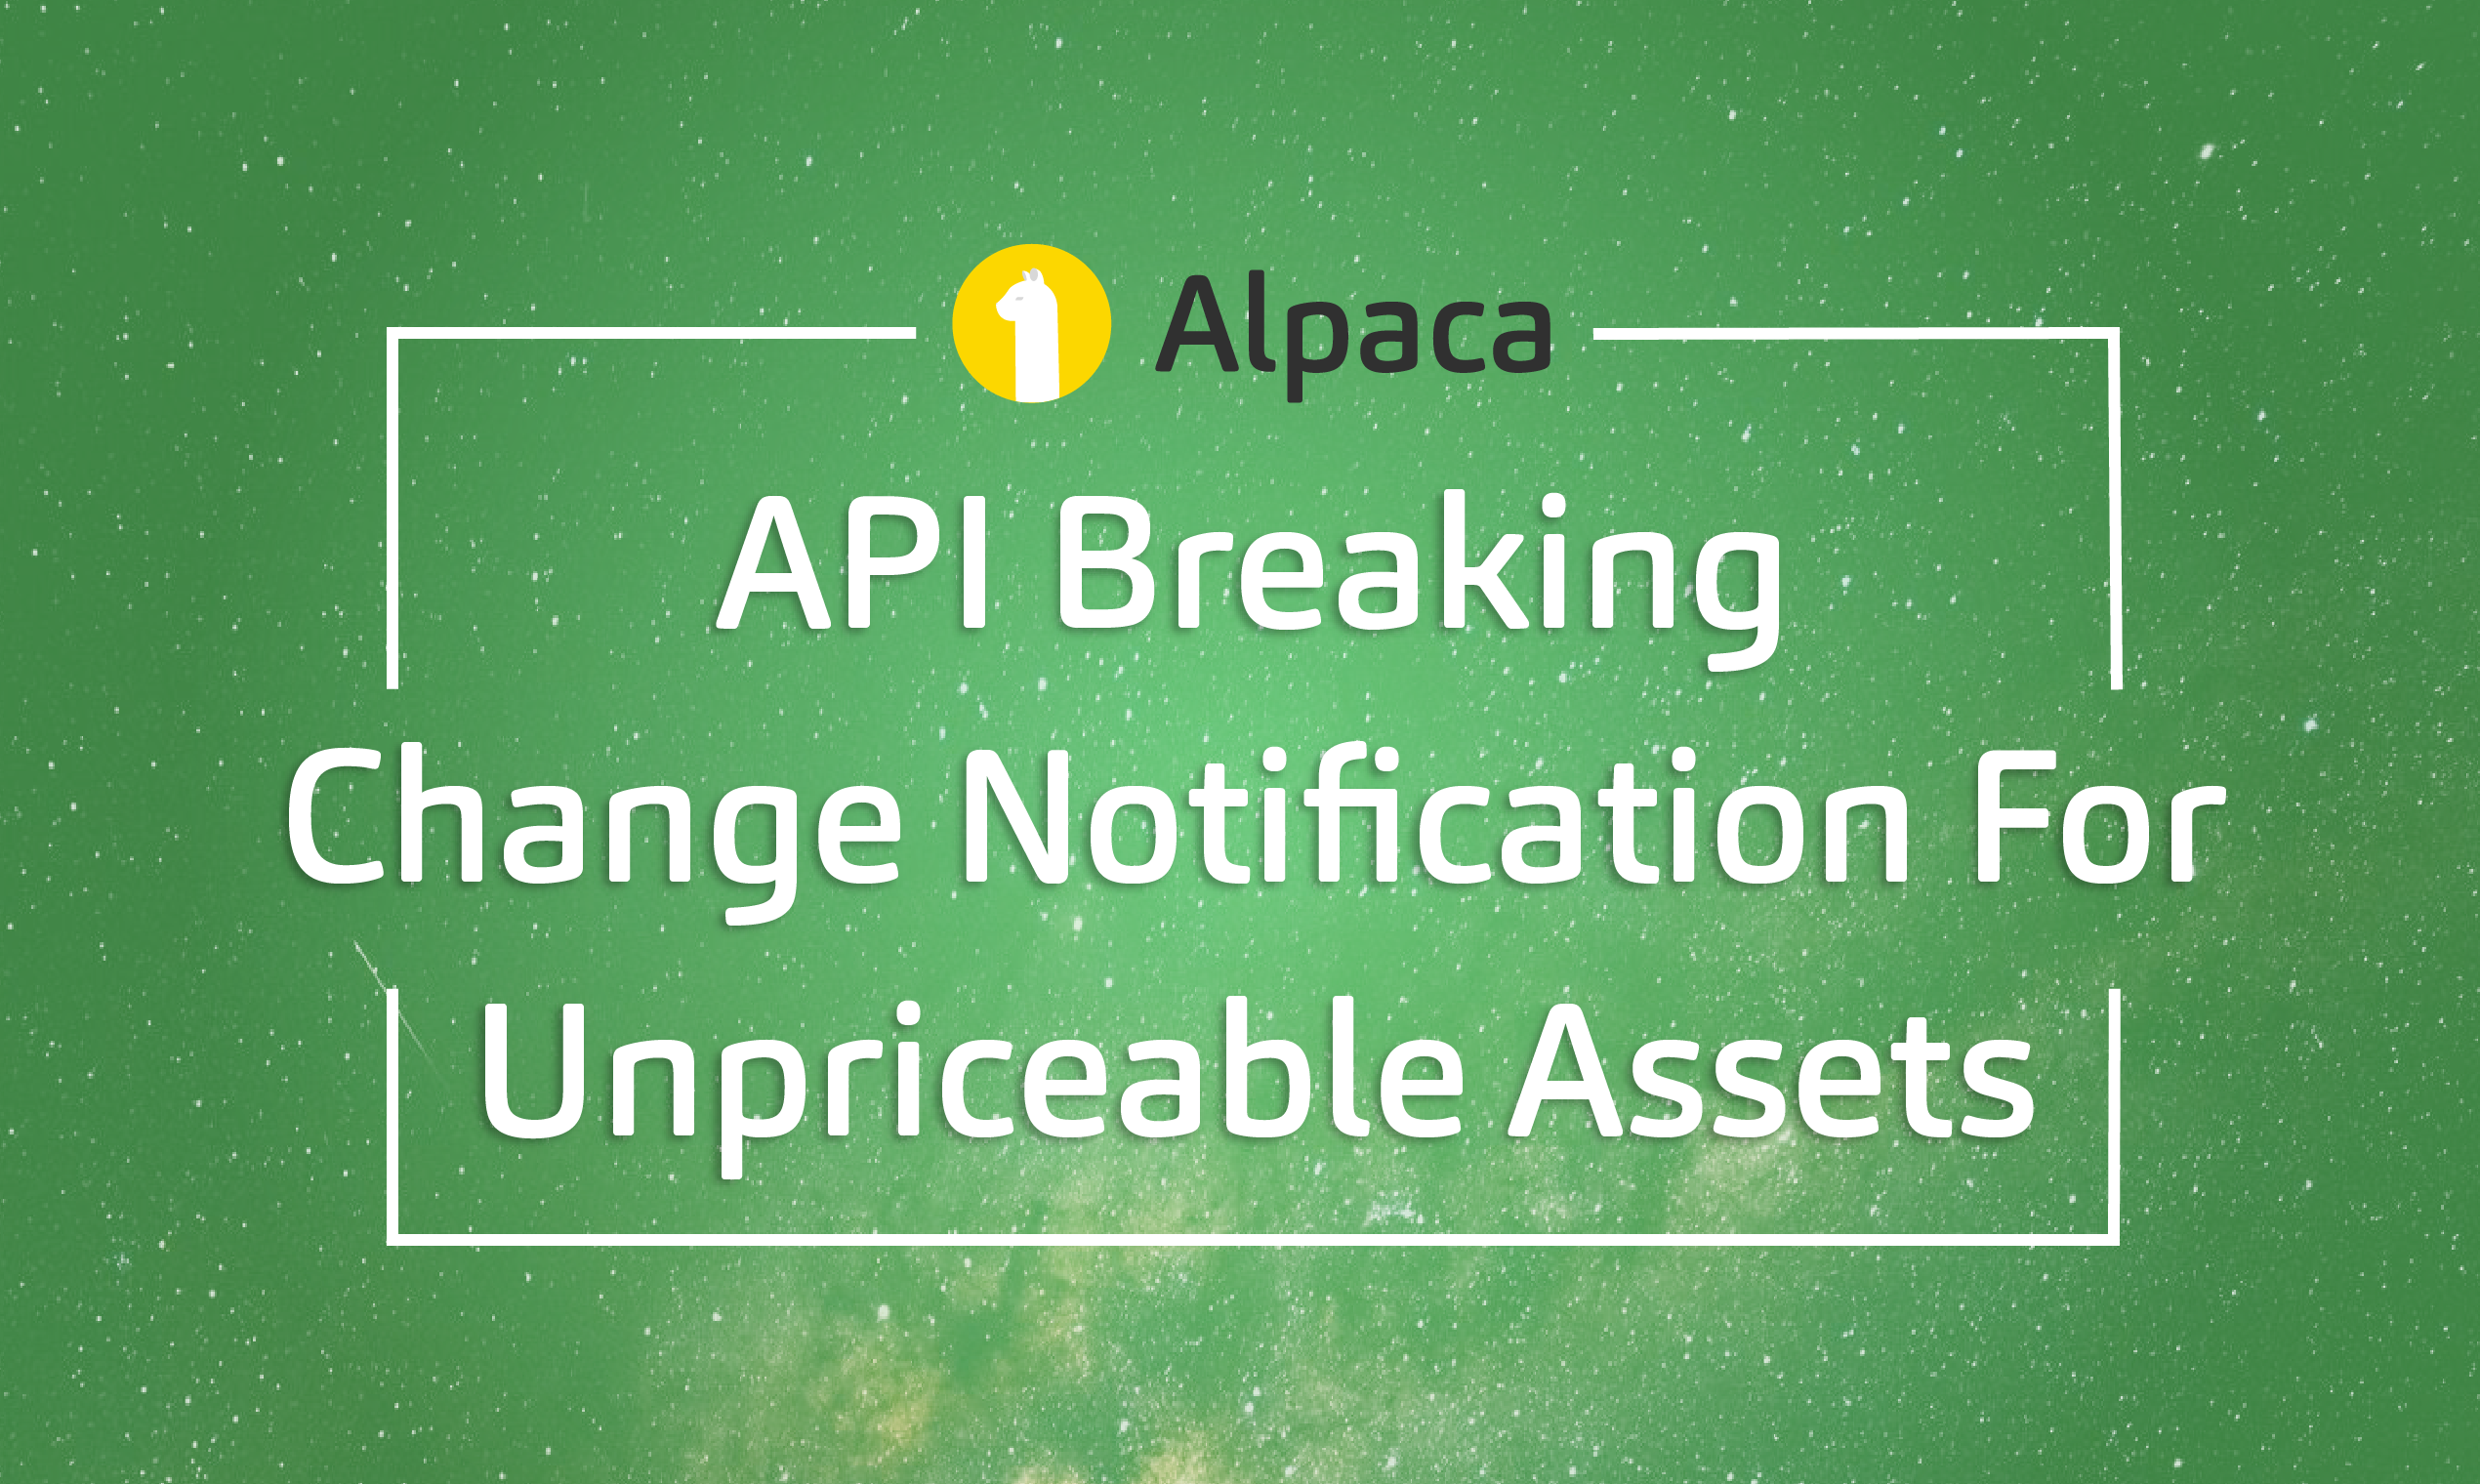 API Breaking Change Notification for Unpriceable Assets